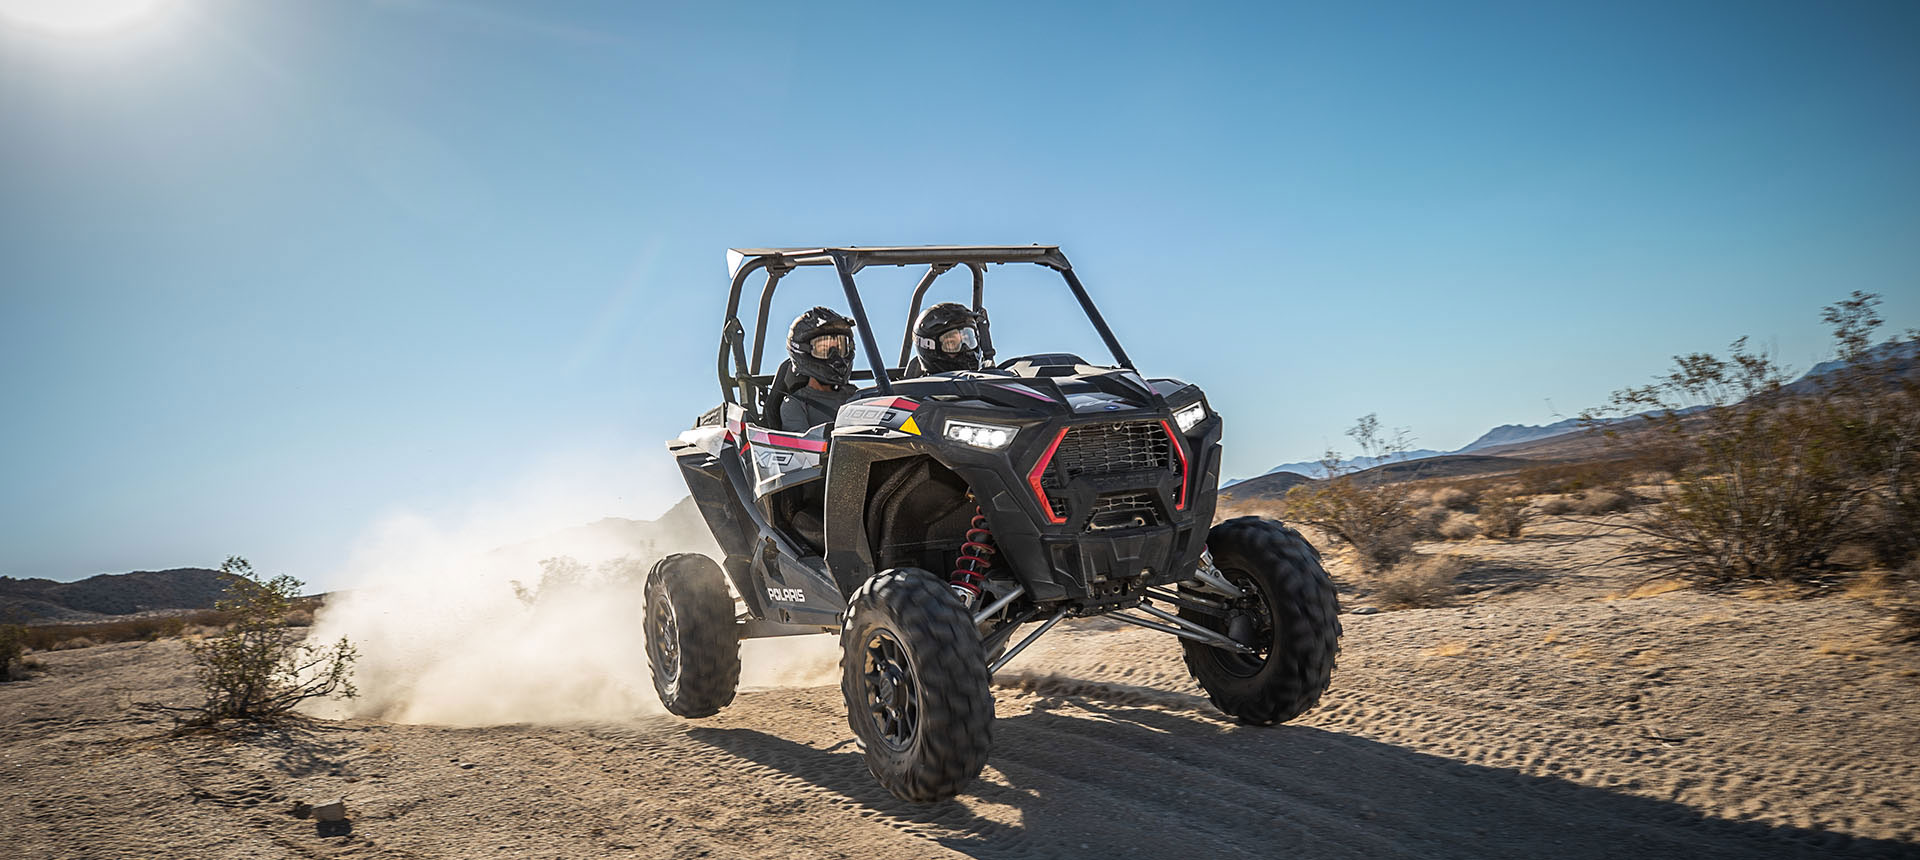 2019 Polaris RZR XP 1000 in Rapid City, South Dakota - Photo 8